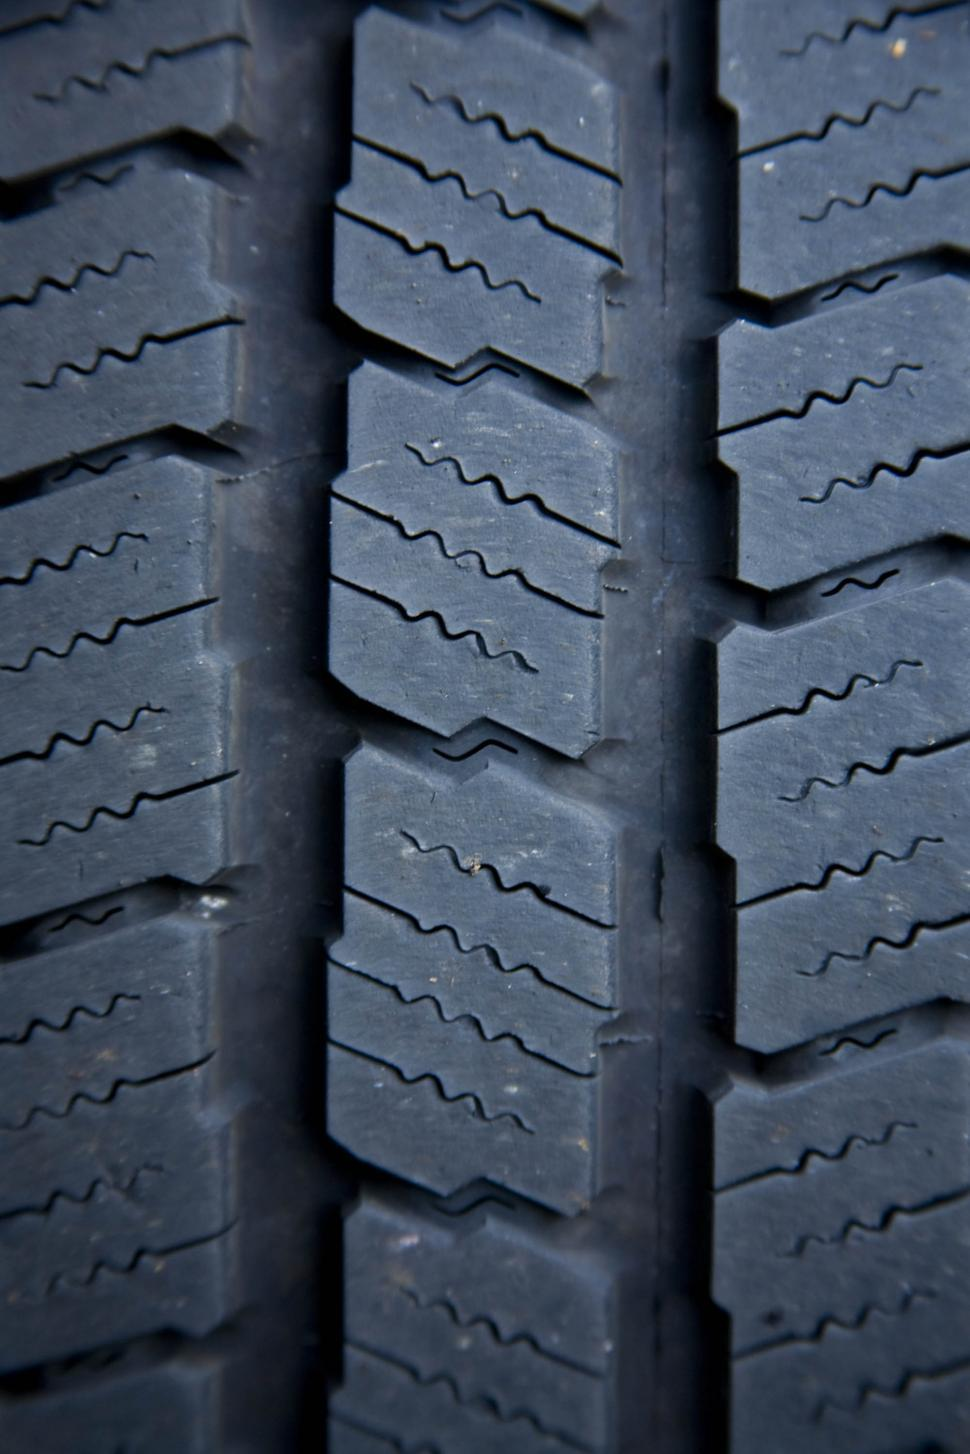 Download Free Stock HD Photo of Black rubber tire Online